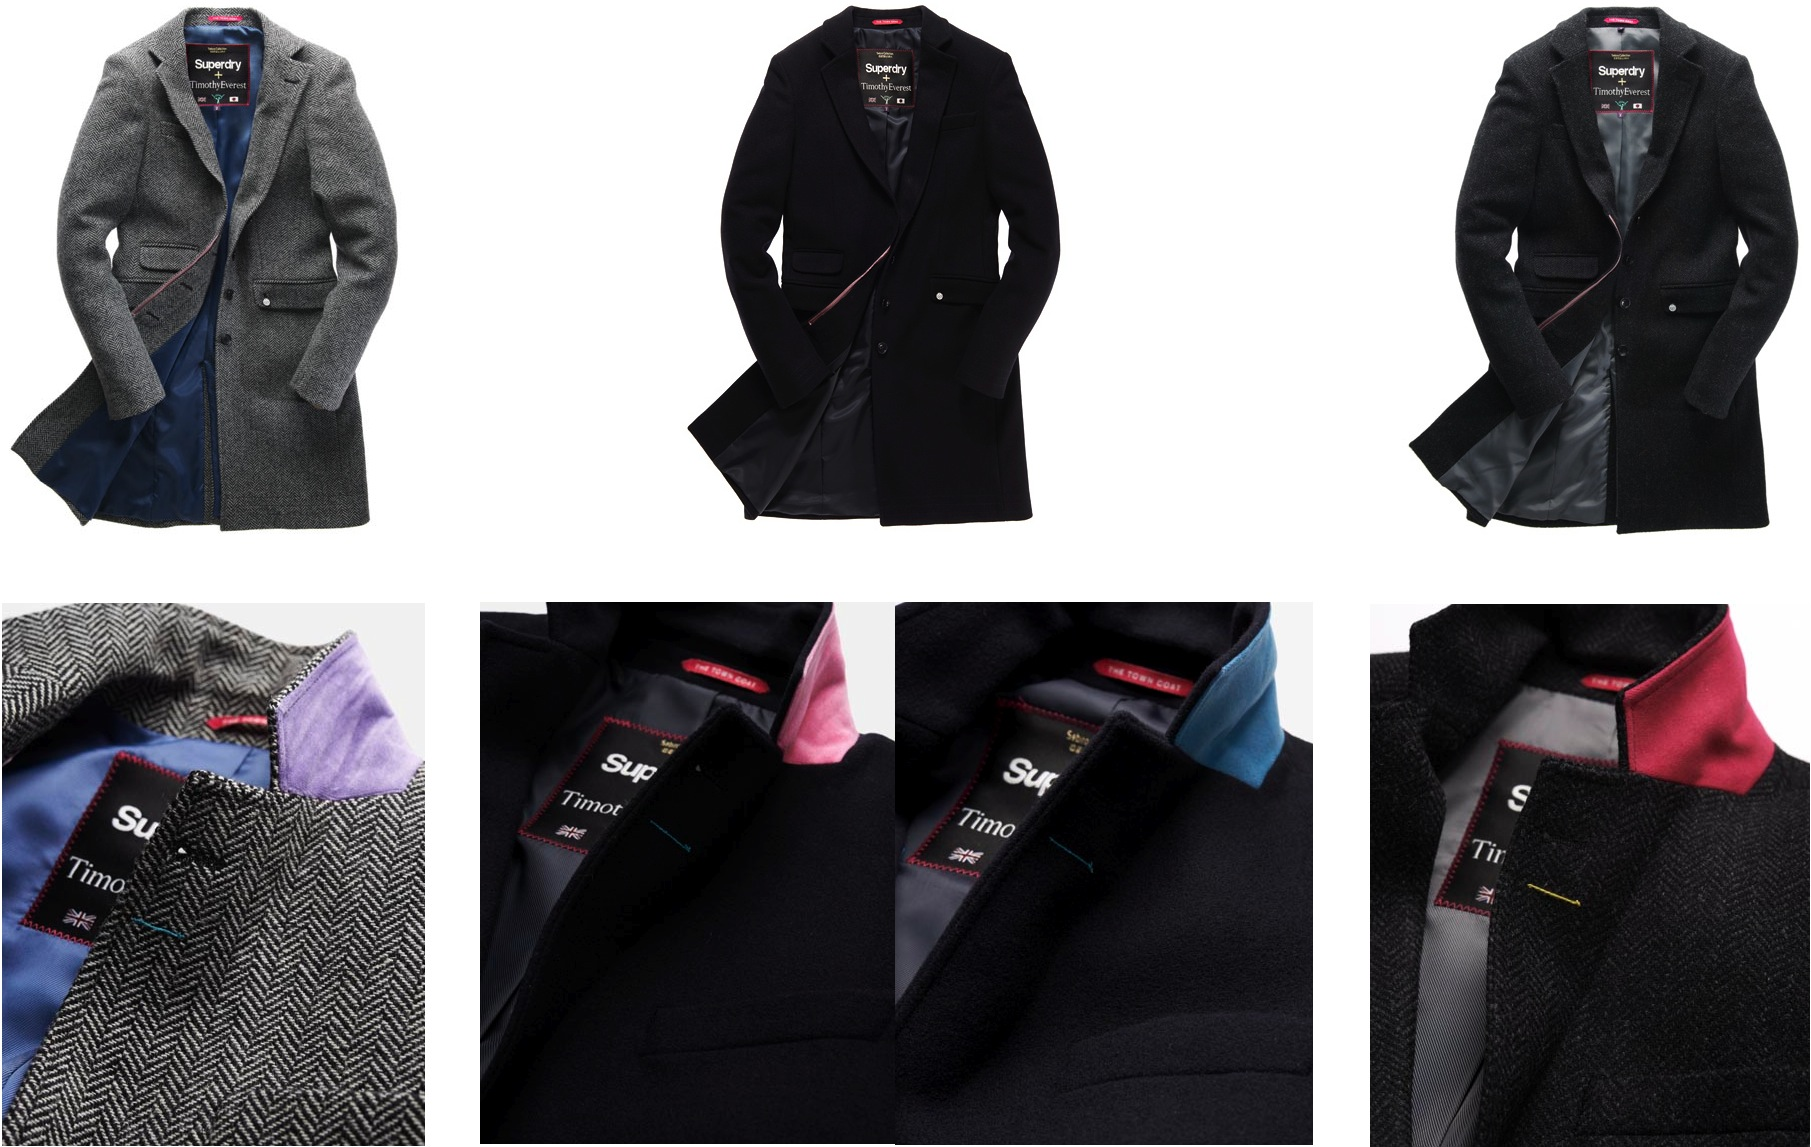 Weekly Favourite: Preppy highstreet with Superdry x Timothy Everest